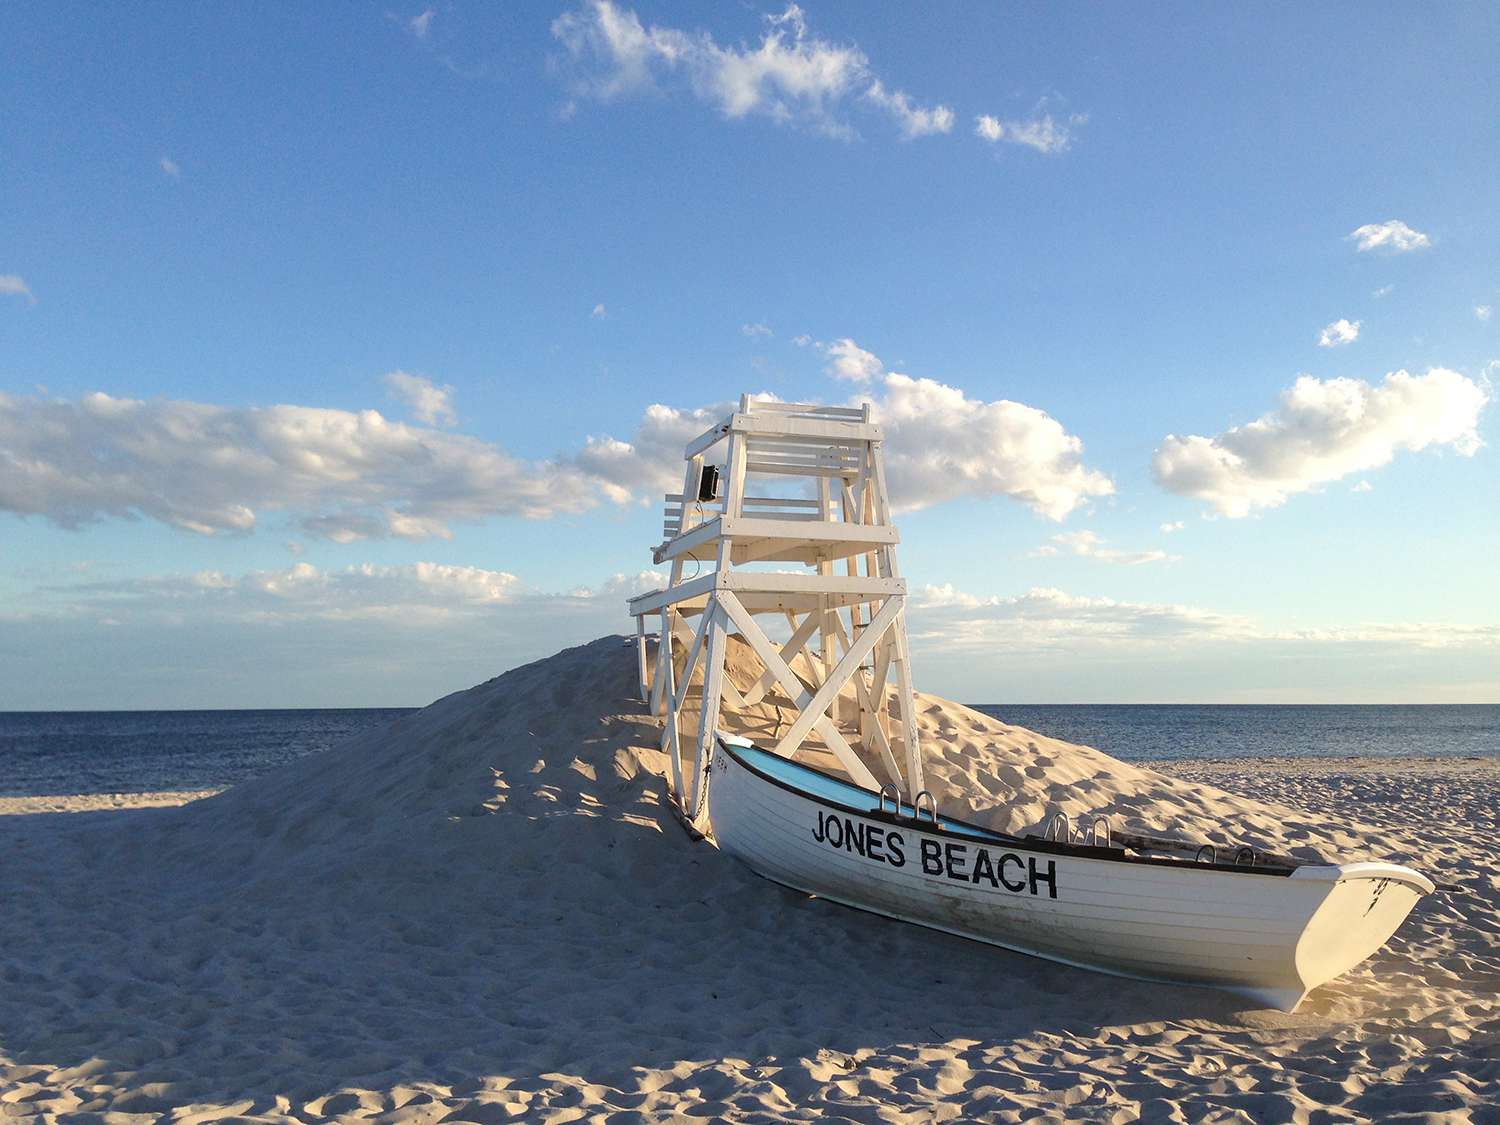 Jones Beach Lifeboat and Lifeguard Chair Landscape